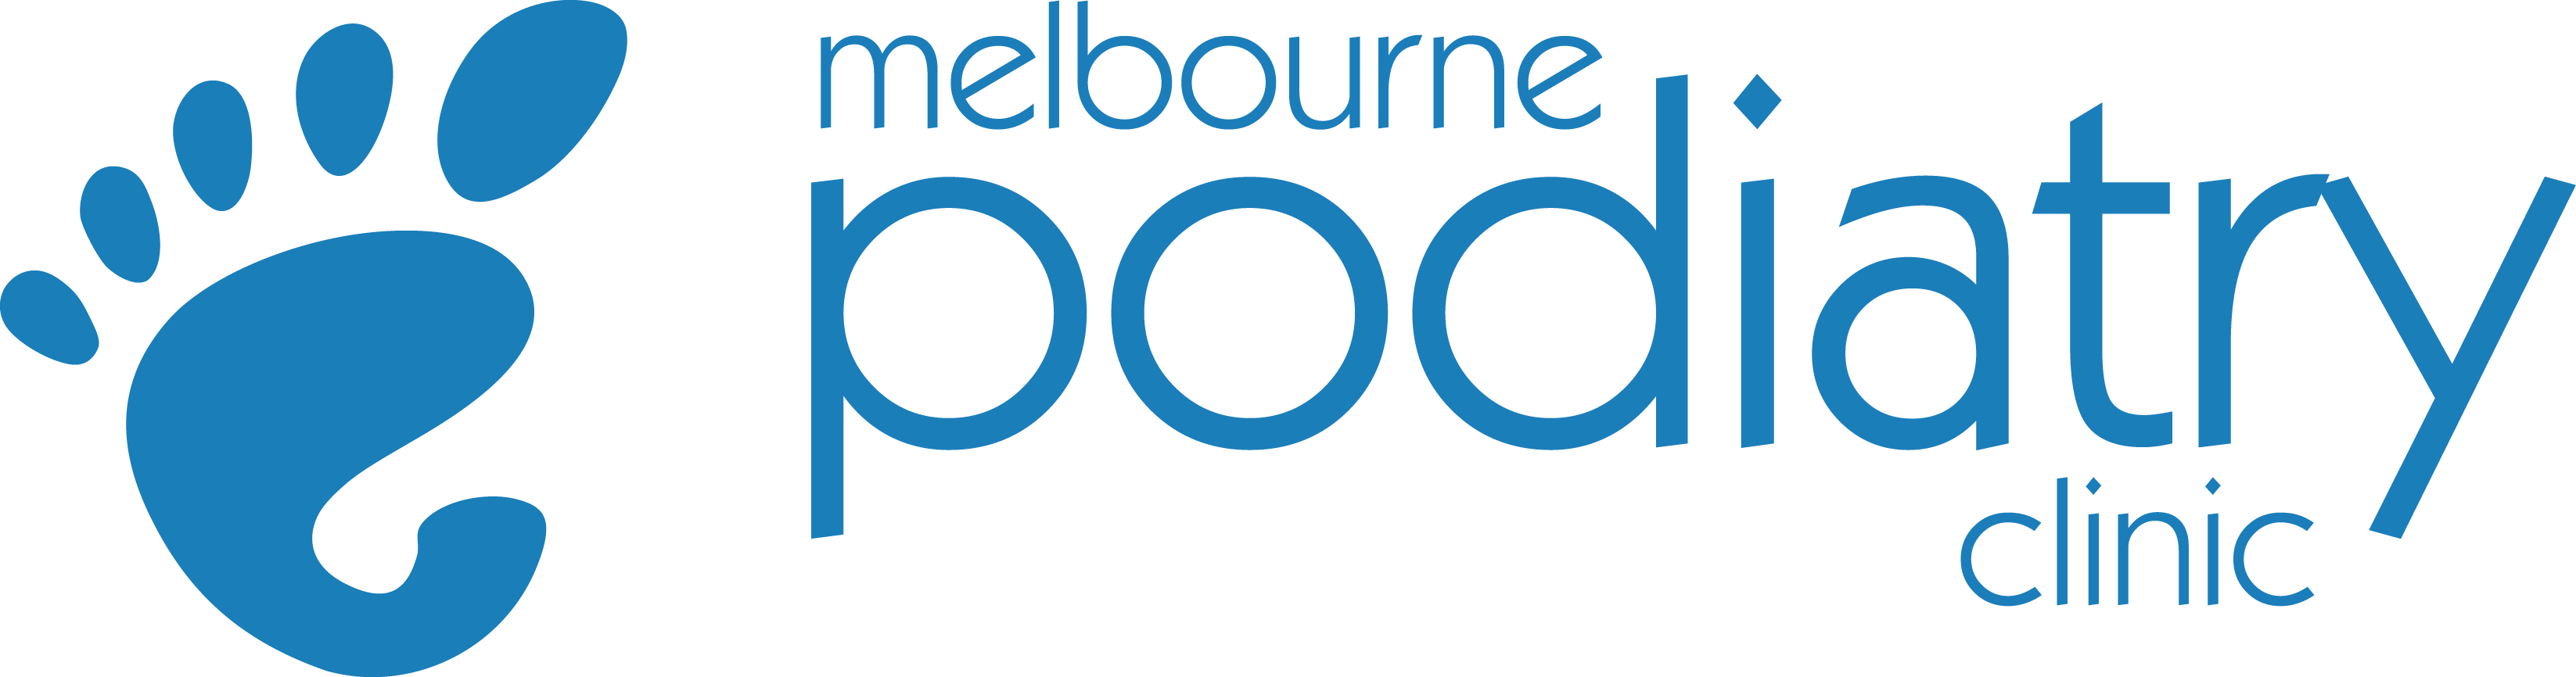 Melbourne Podiatry Clinic